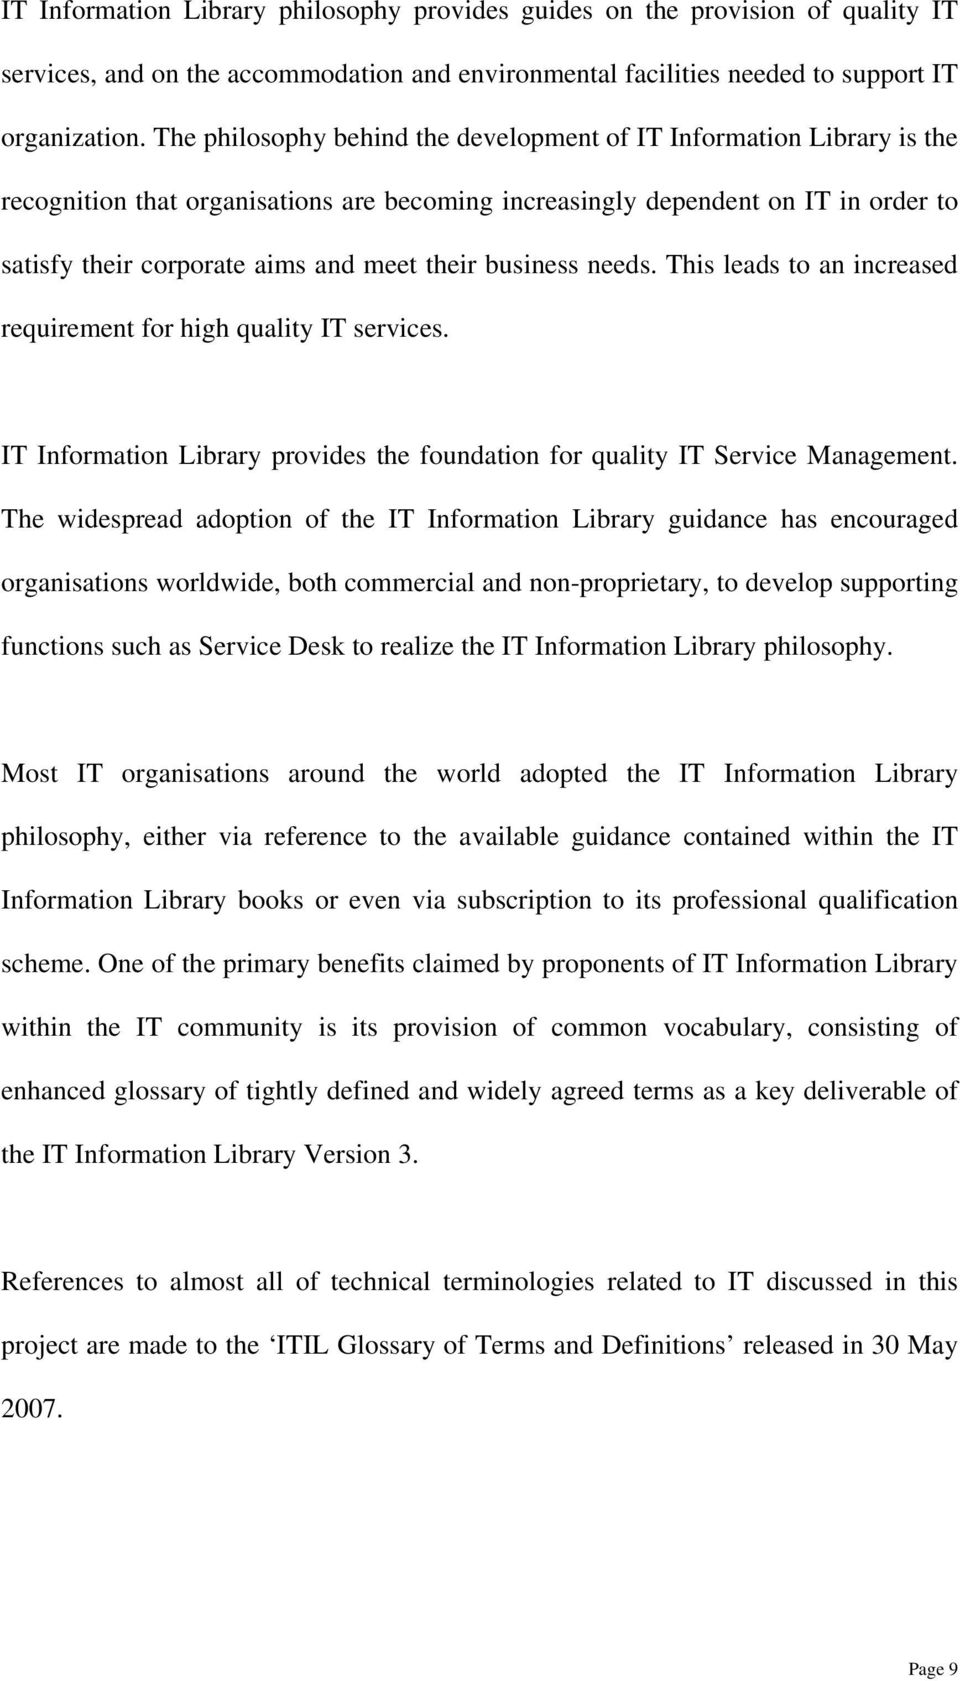 business needs. This leads to an increased requirement for high quality IT services. IT Information Library provides the foundation for quality IT Service Management.